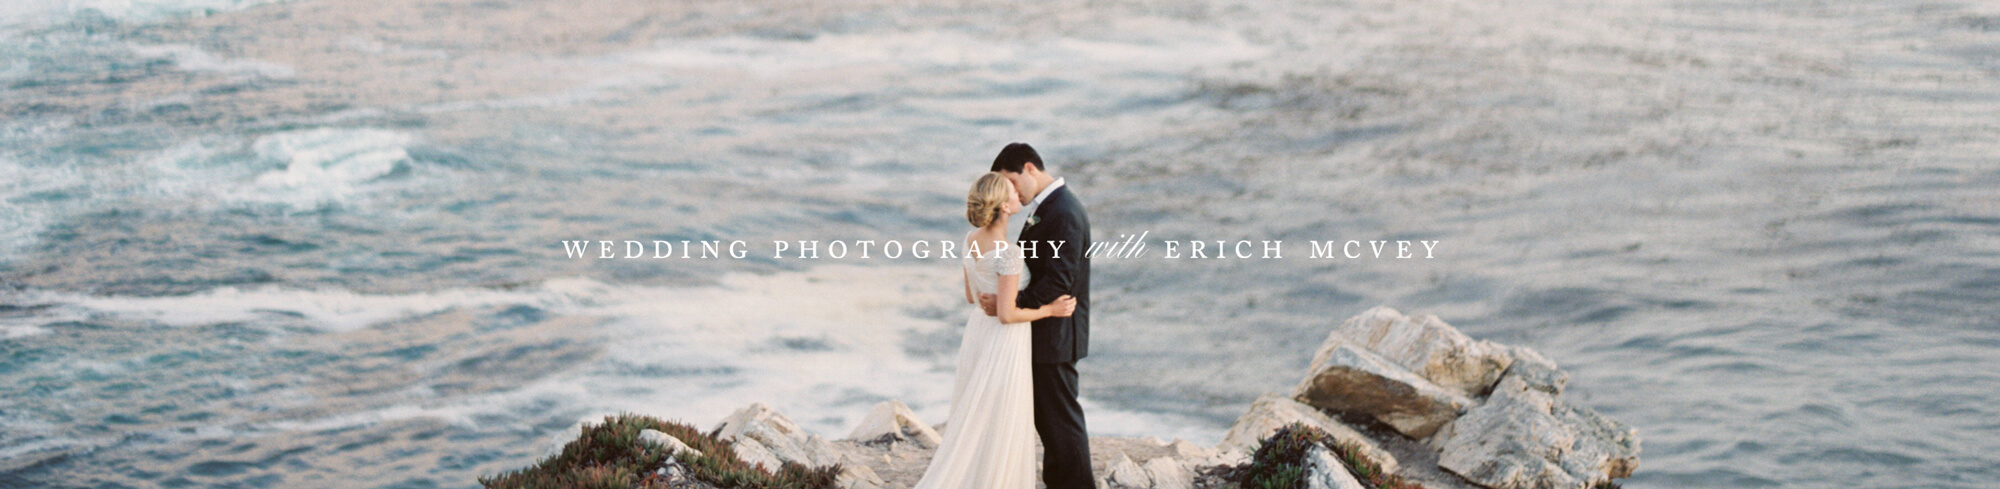 Wedding Photography with Erich McVey